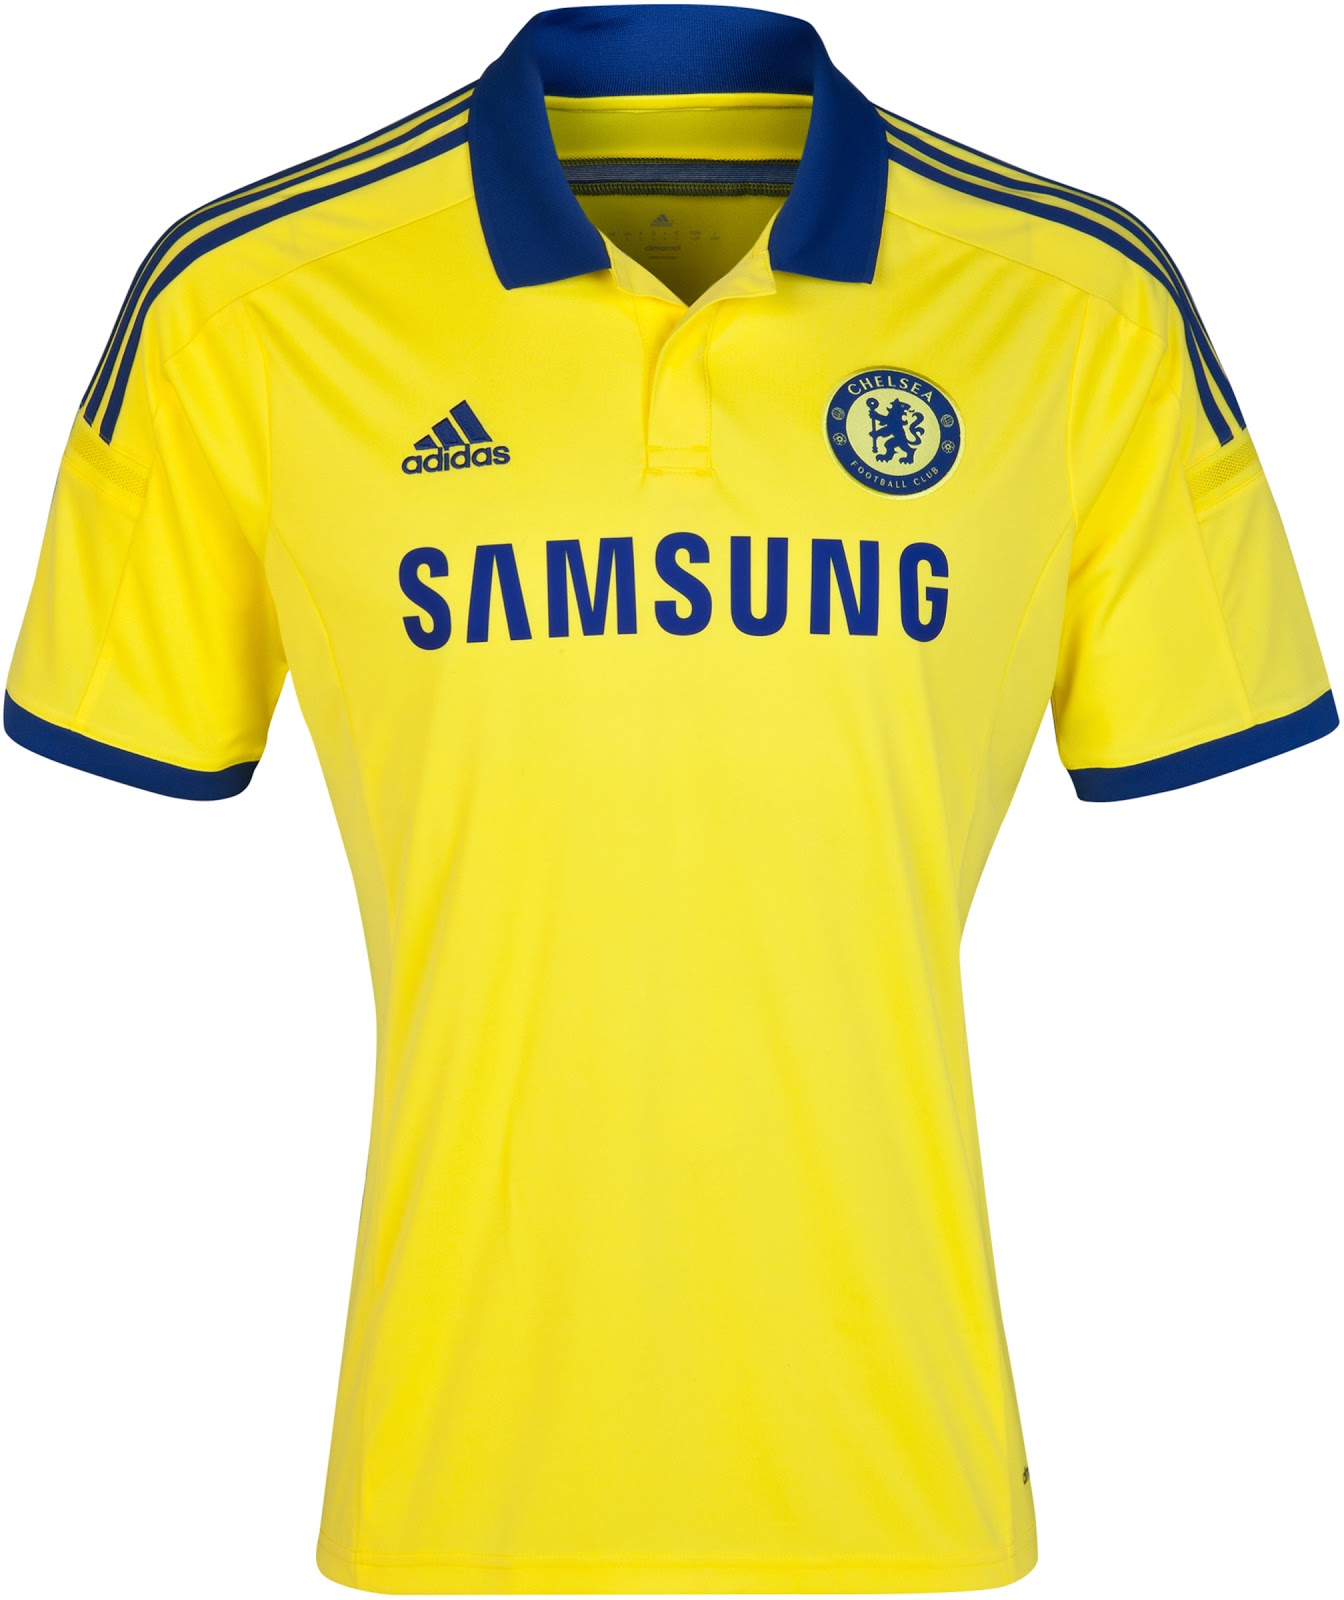 Maillots chelsea fc 2014 2015 maillots foot actu for Maillot chelsea exterieur